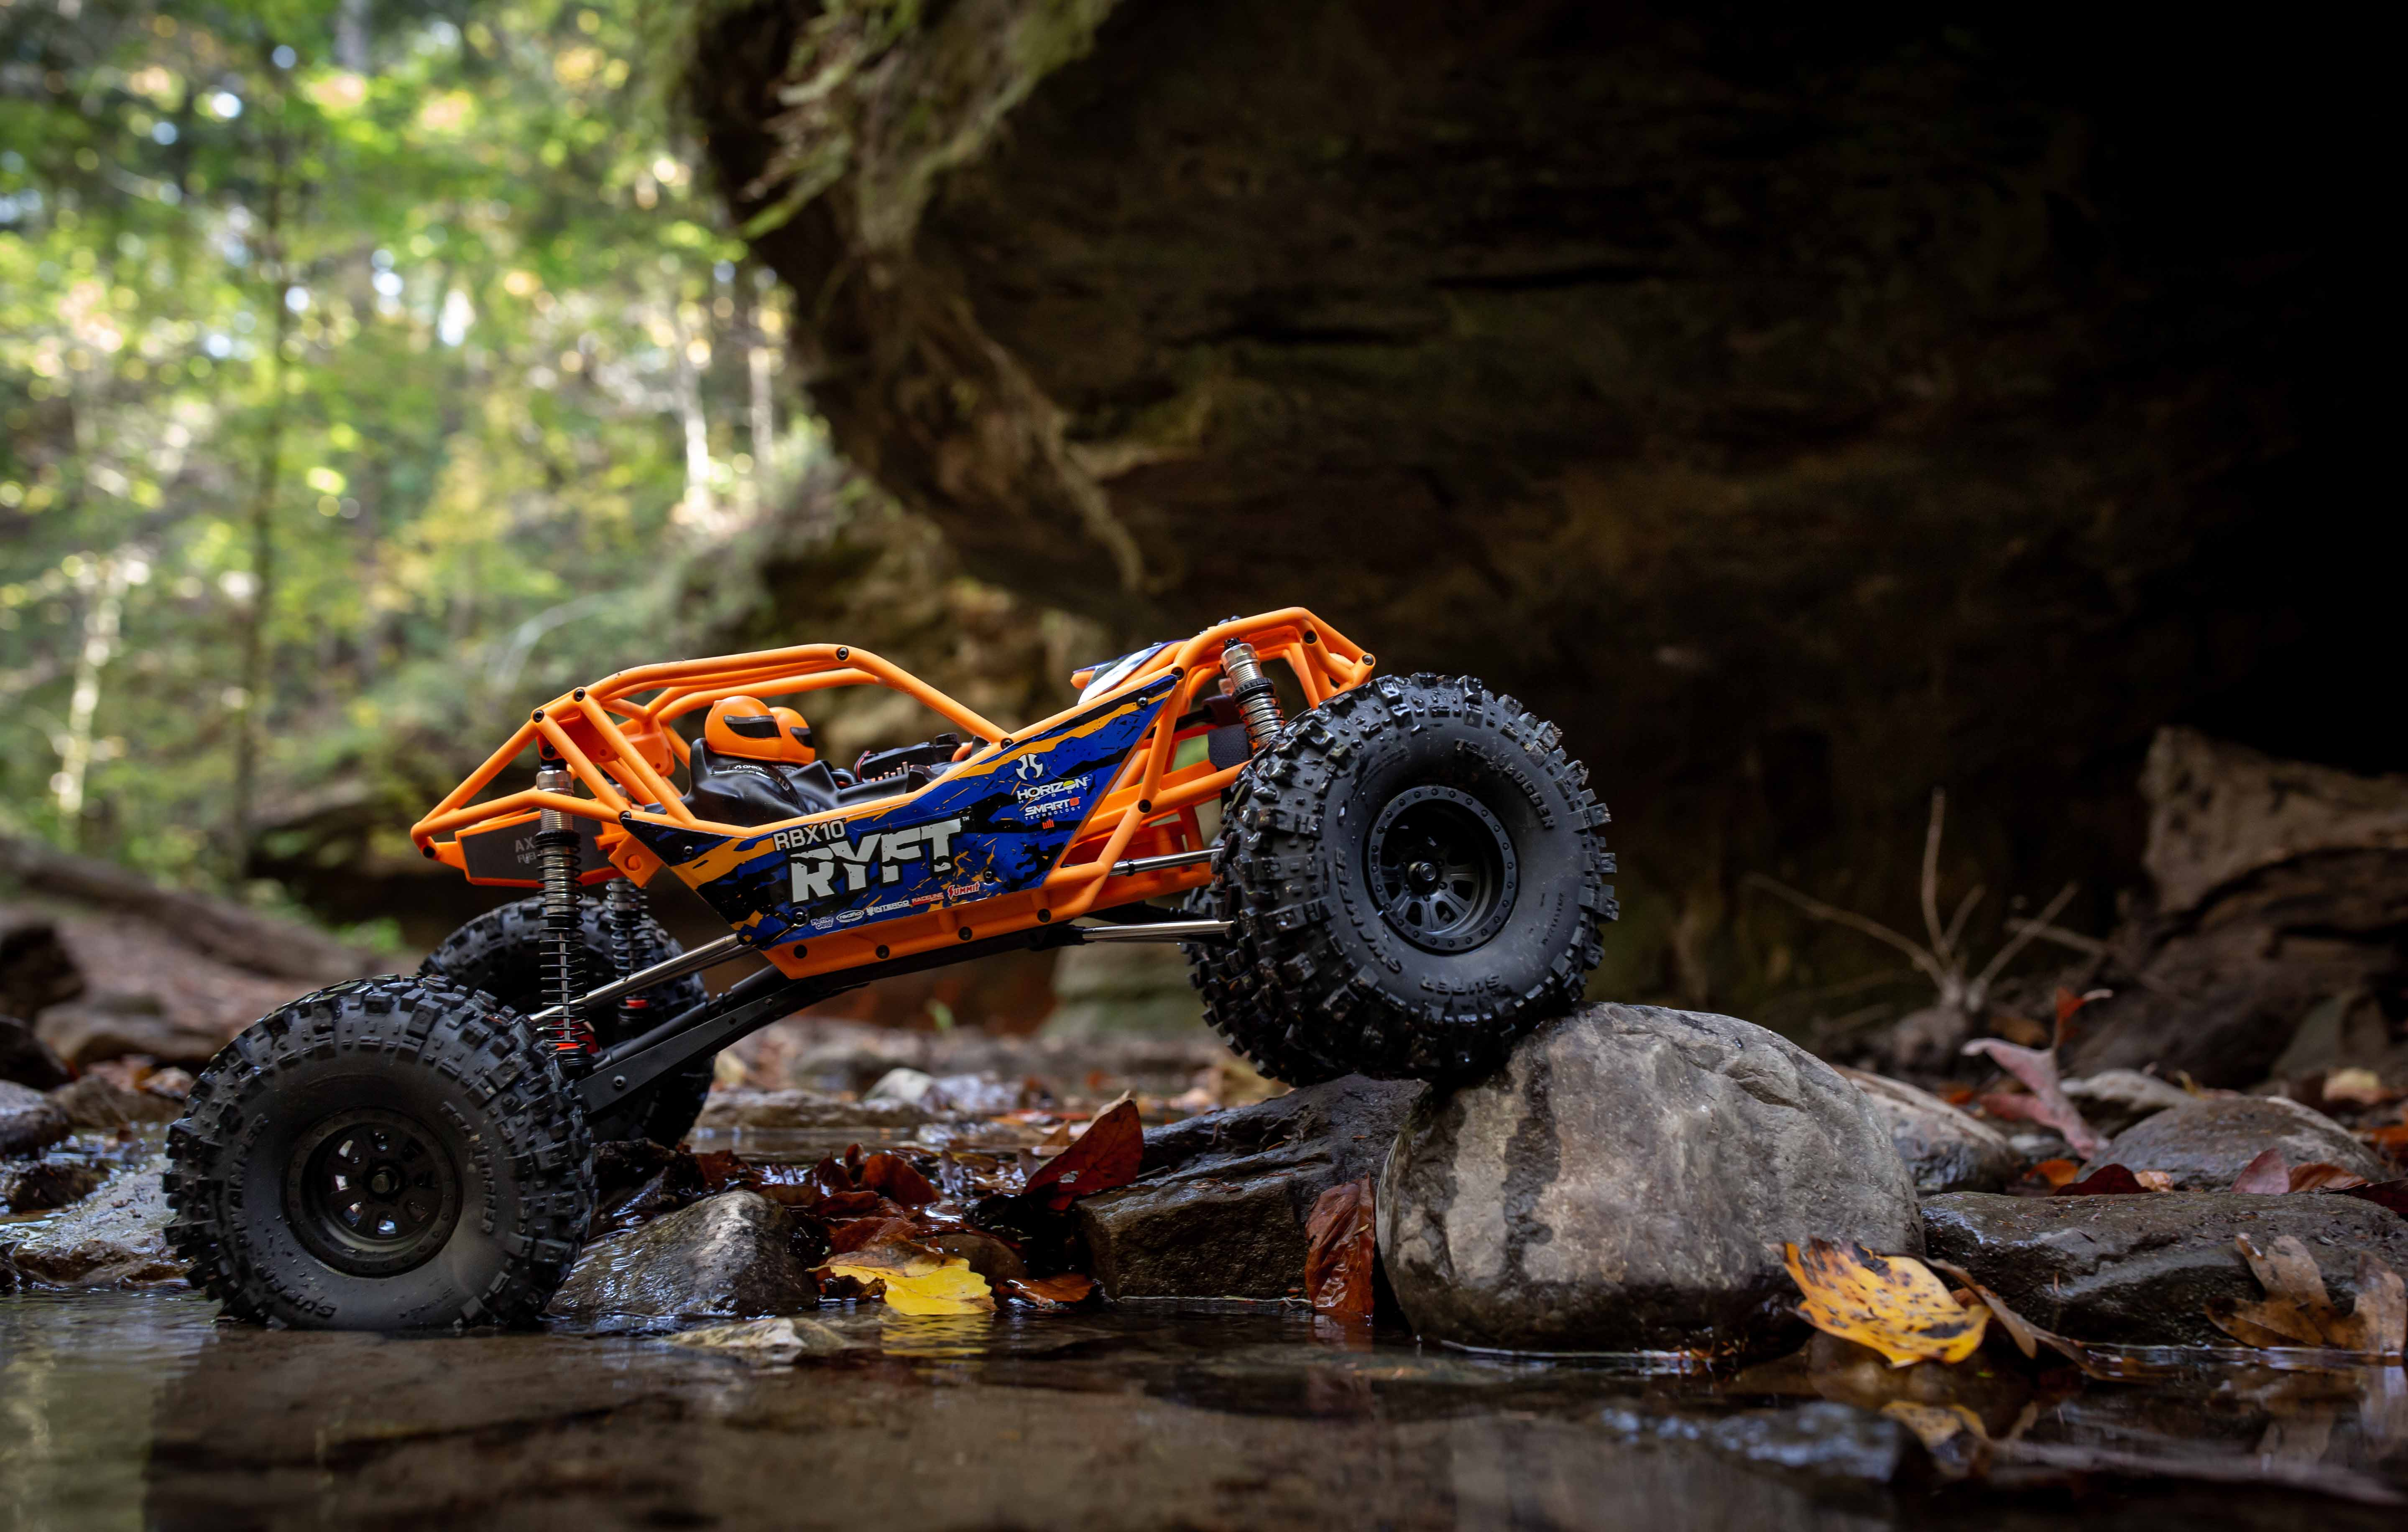 RBX10 Ryft | Axial